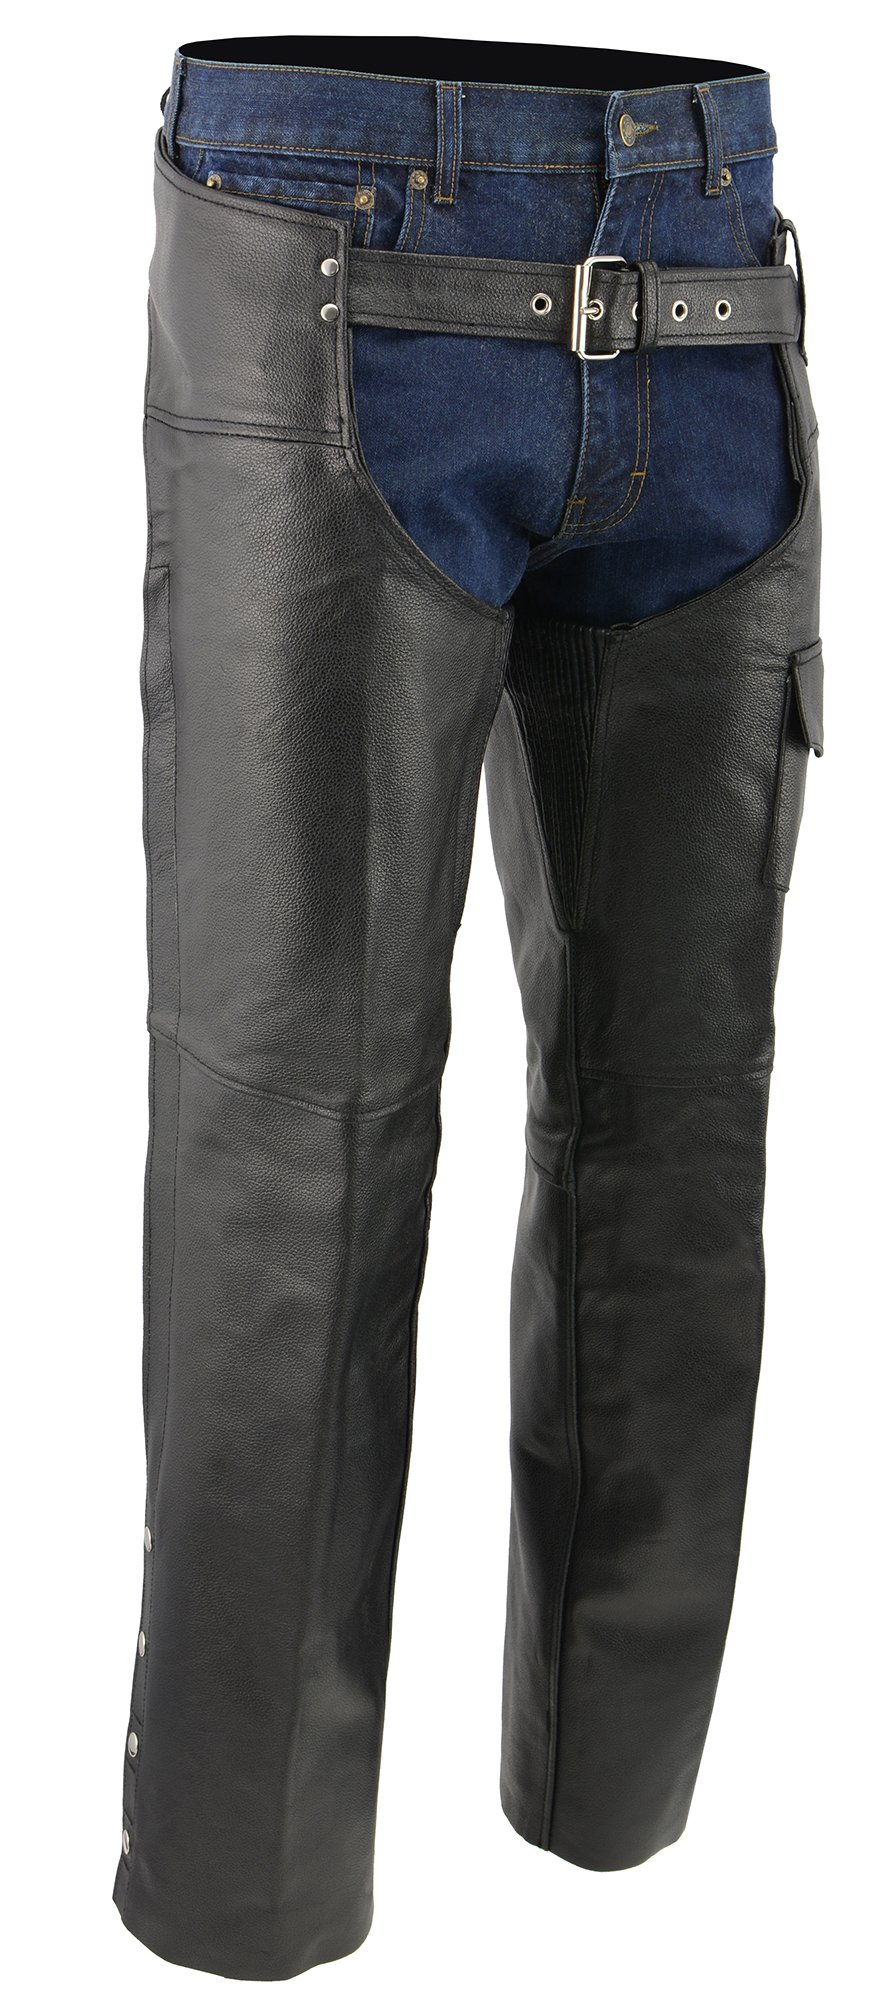 M-BOSS MOTORCYCLE APPAREL-BOS15504-BLACK-Men's leather chaps - zip-out insulated and lined plain biker motorcycle chaps.-BLACK-SMALL by M-BOSS MOTORCYCLE APPAREL